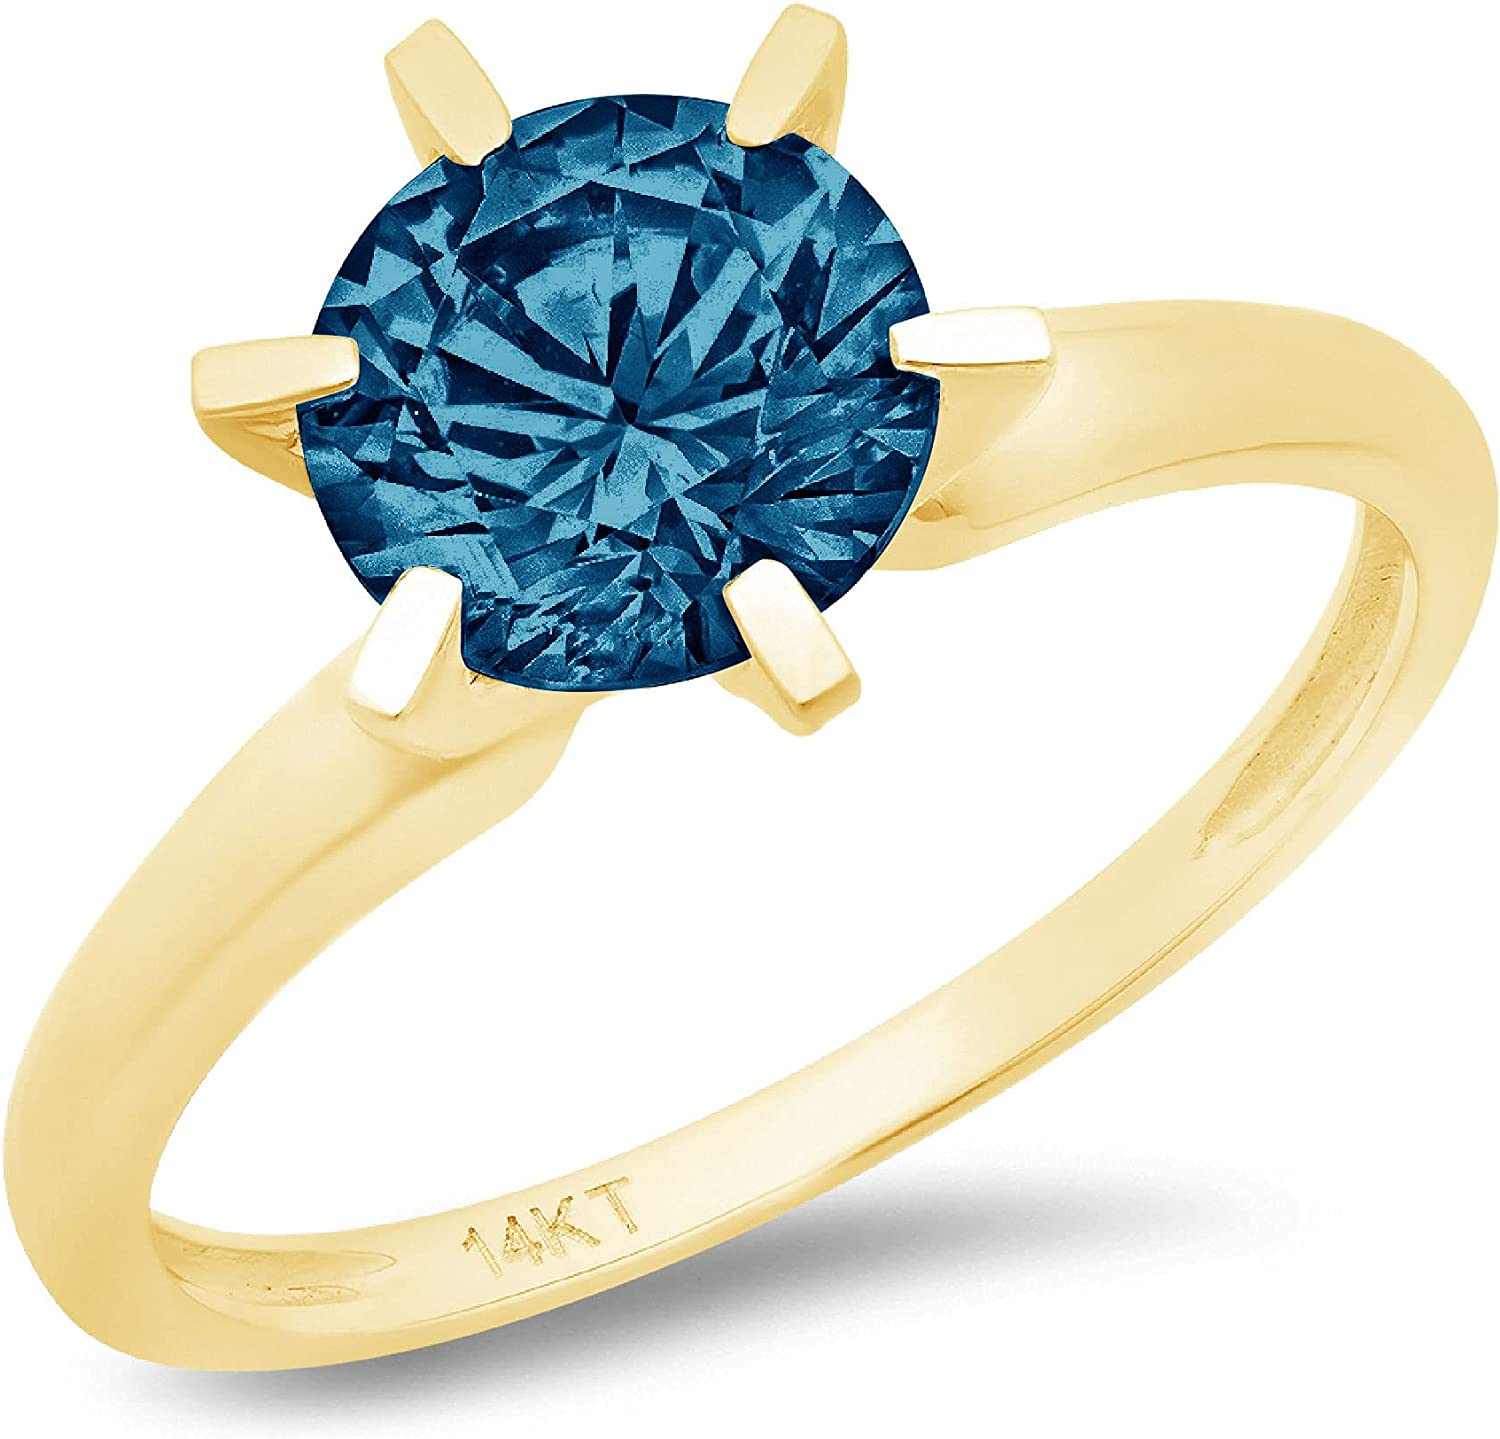 2.50ct Brilliant Round Cut Solitaire Natural London Blue Gem Stone Excellent VVS1 6-prong Engagement Wedding Bridal Promise Anniversary Ring in Solid Real 14k Yellow Gold for Women